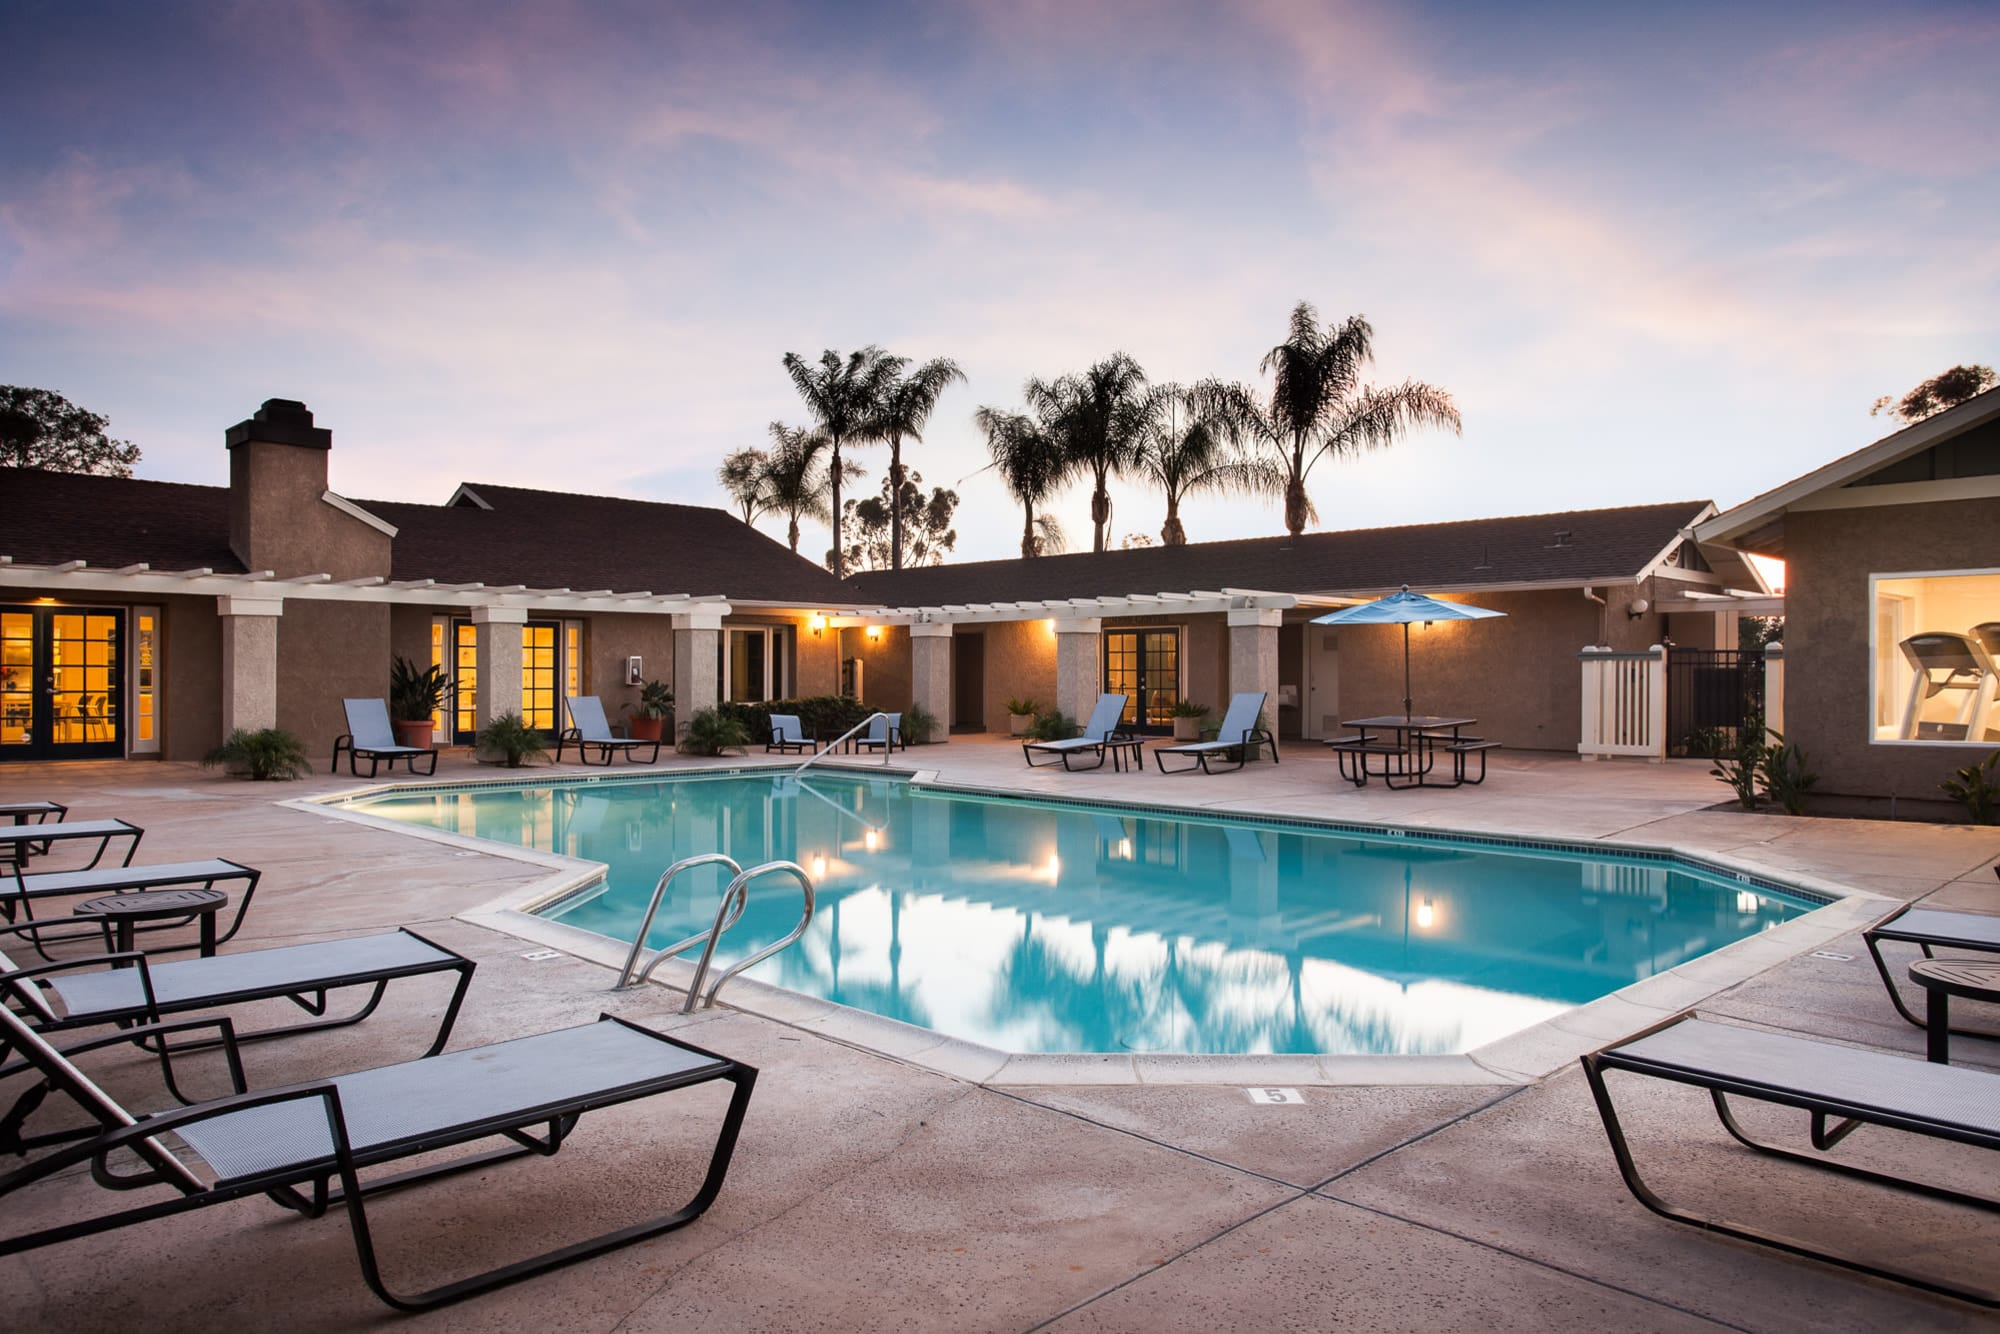 sunset pool at Lakeview Village Apartments